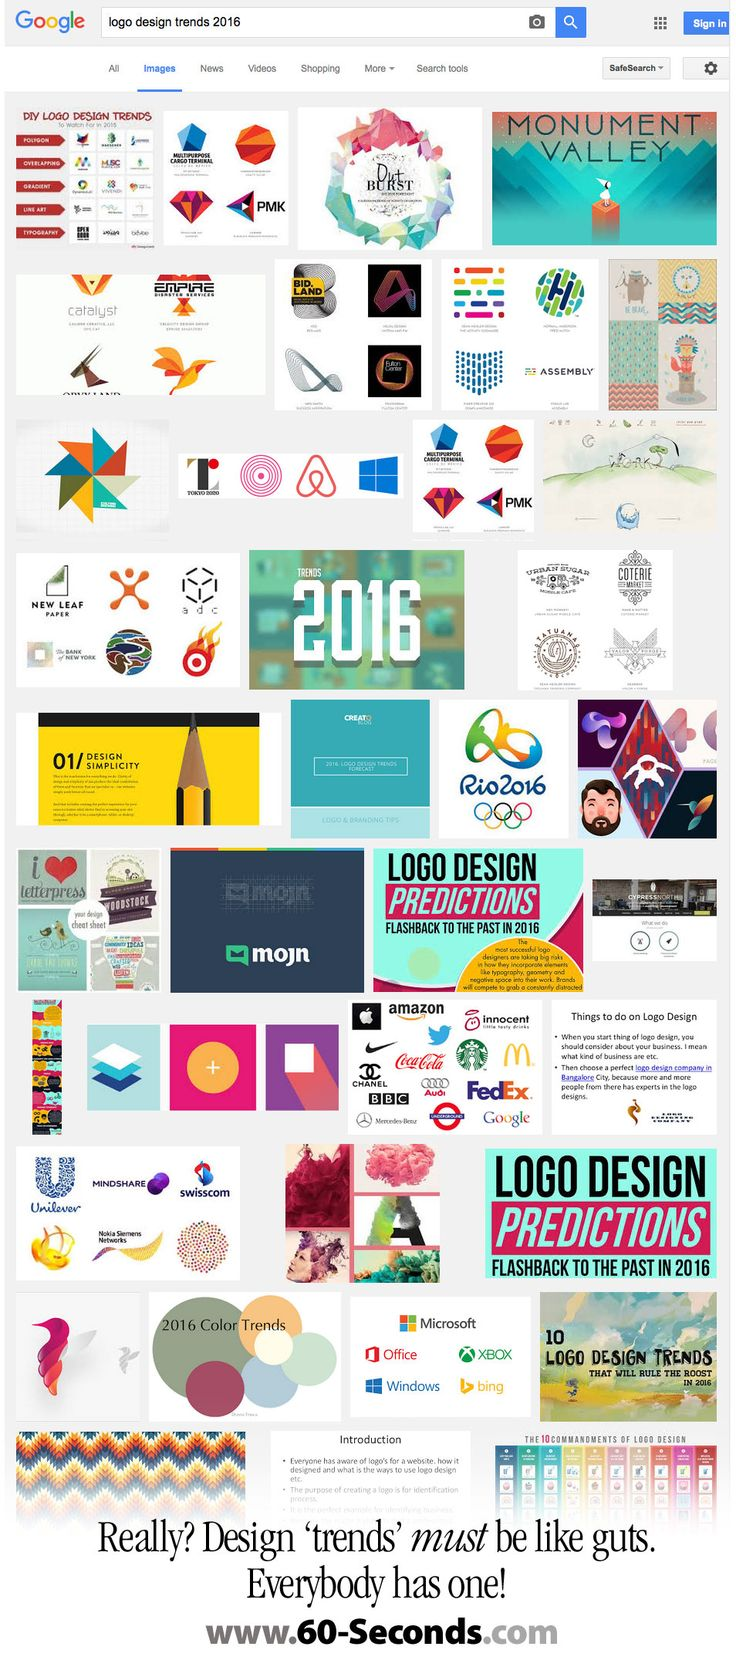 """Logo Design Trends for 2016 ... who picks them? I found a """"Logo Design Trends for 2016"""" post on LinkedIN, but it looked a little fishy. So I followed . . . now I'm really puzzled . . . who sets these trends and why?   This issue of 60-Second Windows sheds light on the logo trends game.   #60-Seconds #60seconds #60secondwindow #showker #logodesign #logodesigns #designtrends"""